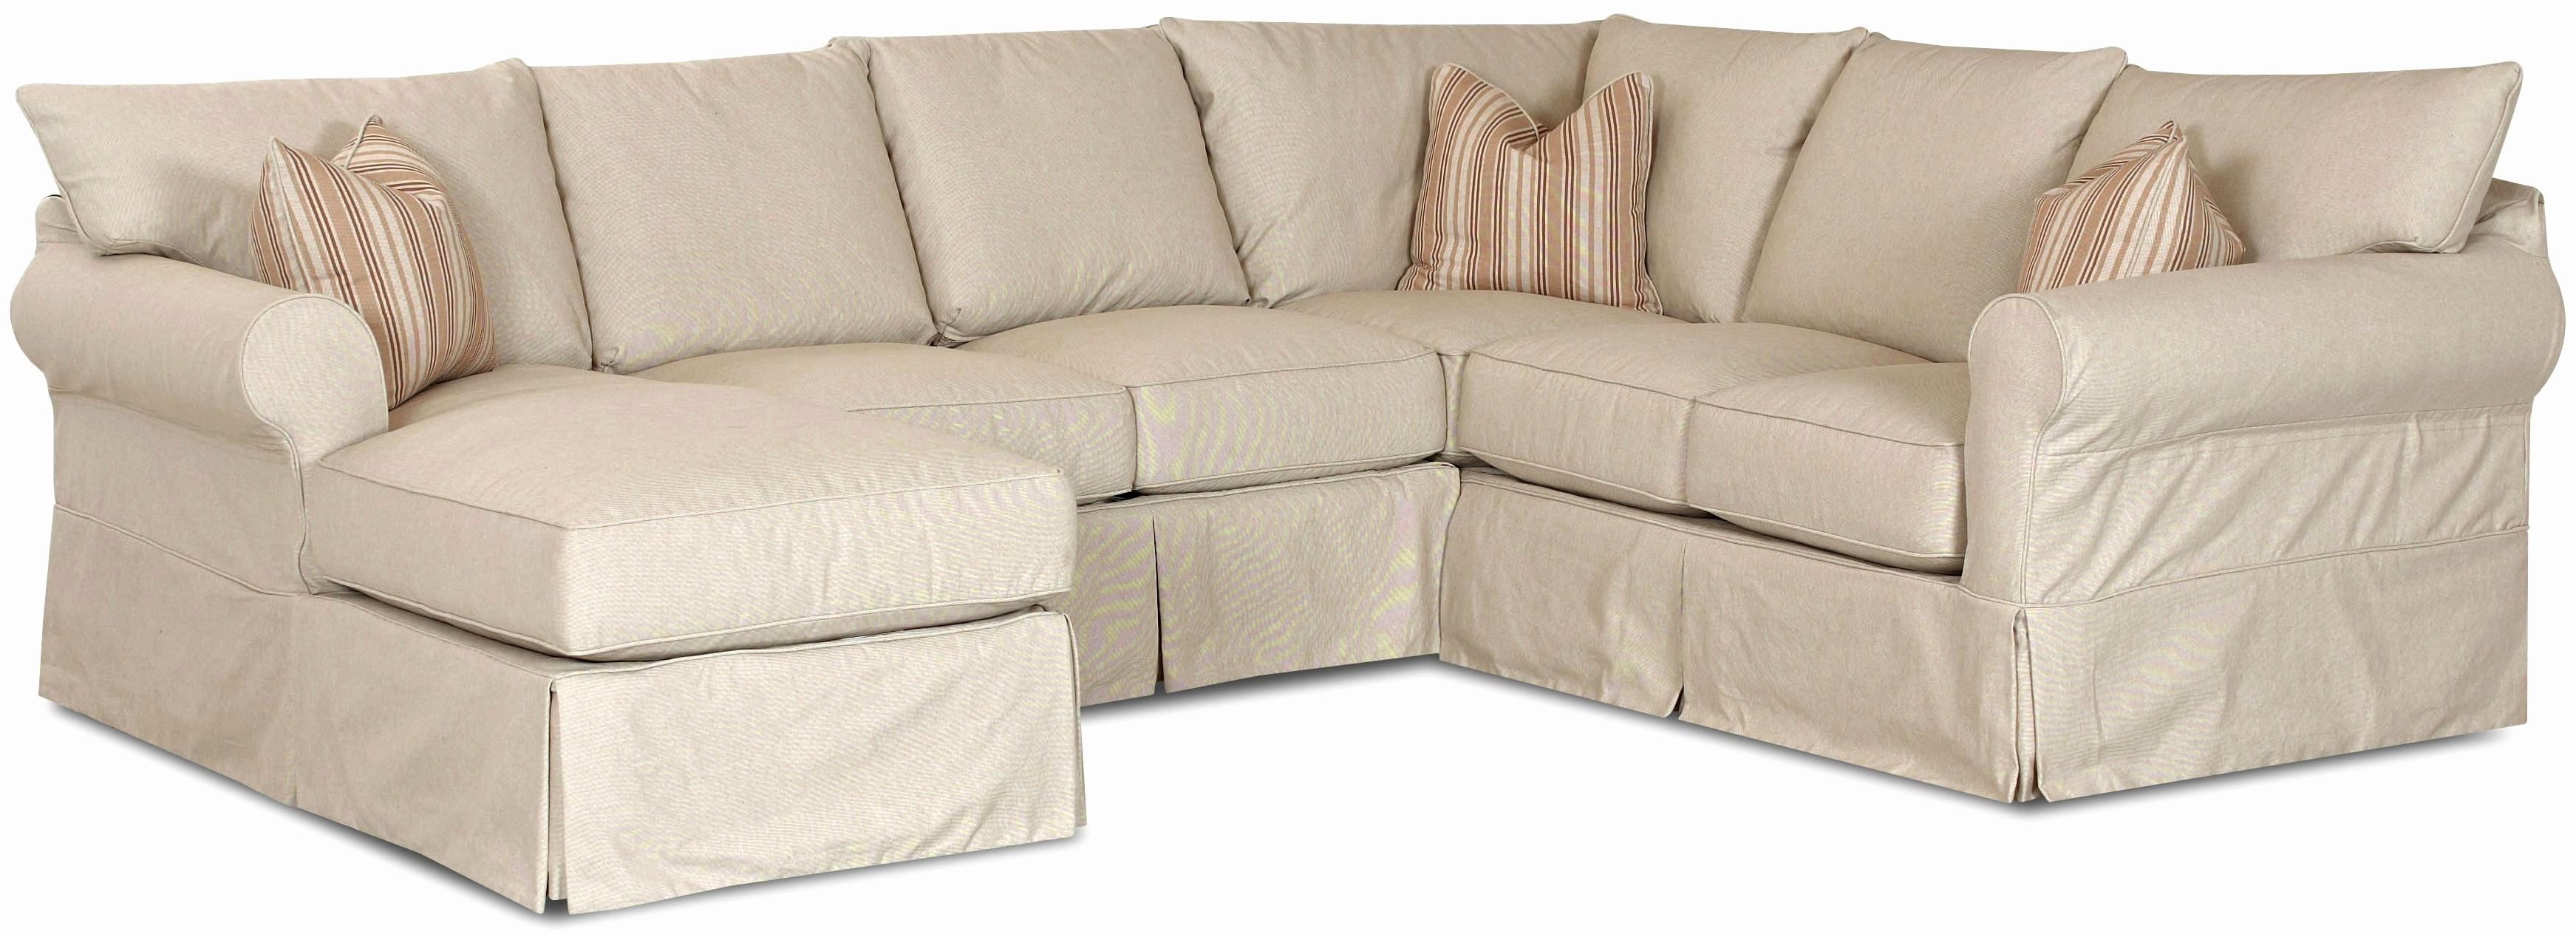 Awesome Slip Covers For Sectionals 2018 – Couches And Sofas Ideas Inside Sectional Sofas With Covers (View 8 of 10)